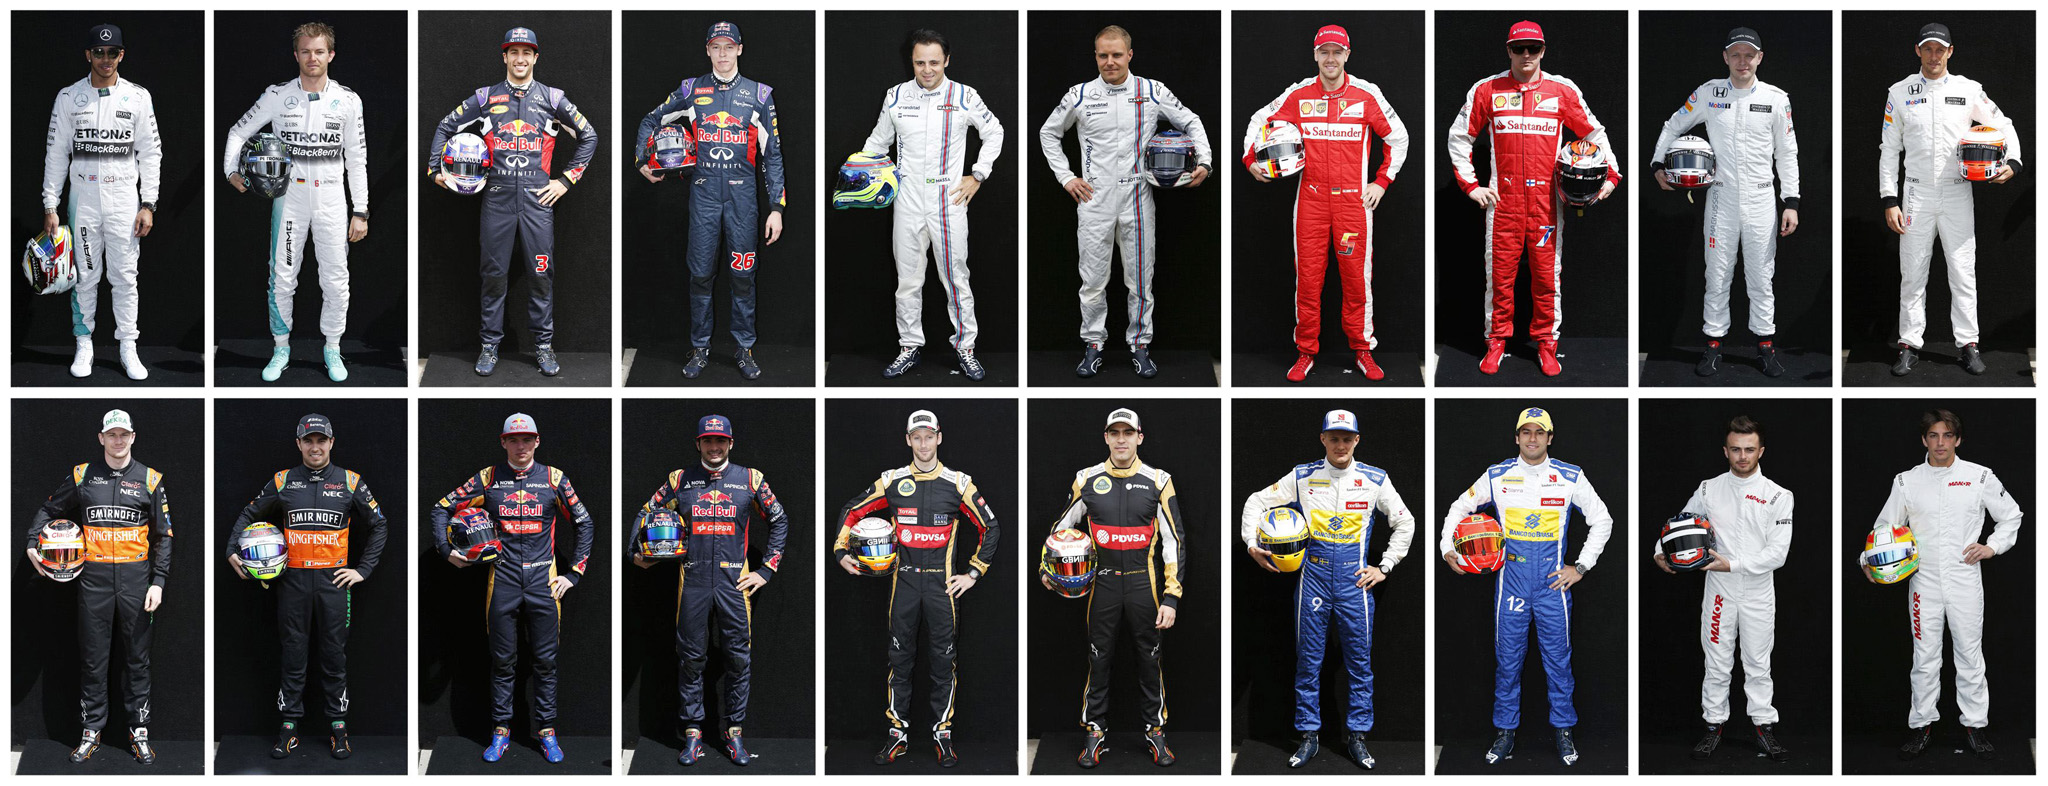 Formula One drivers for the 2015 season are pictured in this combination photo at Melbourne's Albert Park Track...Formula One drivers for the 2015 season are pictured in this combination photo at Melbourne's Albert Park Track, March 12, 2015.   (Top Row, L to R) Mercedes driver Lewis Hamilton of Britain, Mercedes driver Nico Rosberg of Germany, Red Bull driver Daniel Ricciardo of Australia, Red Bull driver Daniil Kvyat of Russia, Williams driver Felipe Massa of Brazil, Williams driver Valtteri Bottas of Finland, Ferrari driver Sebastian Vettel of Germany, Ferrari driver Kimi Raikkonen of Finland, McLaren driver Kevin Magnussen of Denmark and McLaren driver Jenson Button of Britain. (Bottom Row, L to R) Force India driver Nico Hulkenberg of Germany, Force India driver Sergio Perez of Mexico, Toro Rosso driver Max Verstappen of the Netherlands, Toro Rosso driver Carlos Sainz Jr of Spain, Lotus driver Romain Grosjean of France, Lotus driver Pastor Maldonado of Venezuela, Sauber driver Marcus Ericsson of Sweden, Sauber driver Felipe Nasr of Brazil, Marussia driver Will Stevens of Britain and Marussia driver Roberto Merhi of Spain.   REUTERS/Brandon Malone (AUSTRALIA  - Tags: SPORT MOTORSPORT F1)